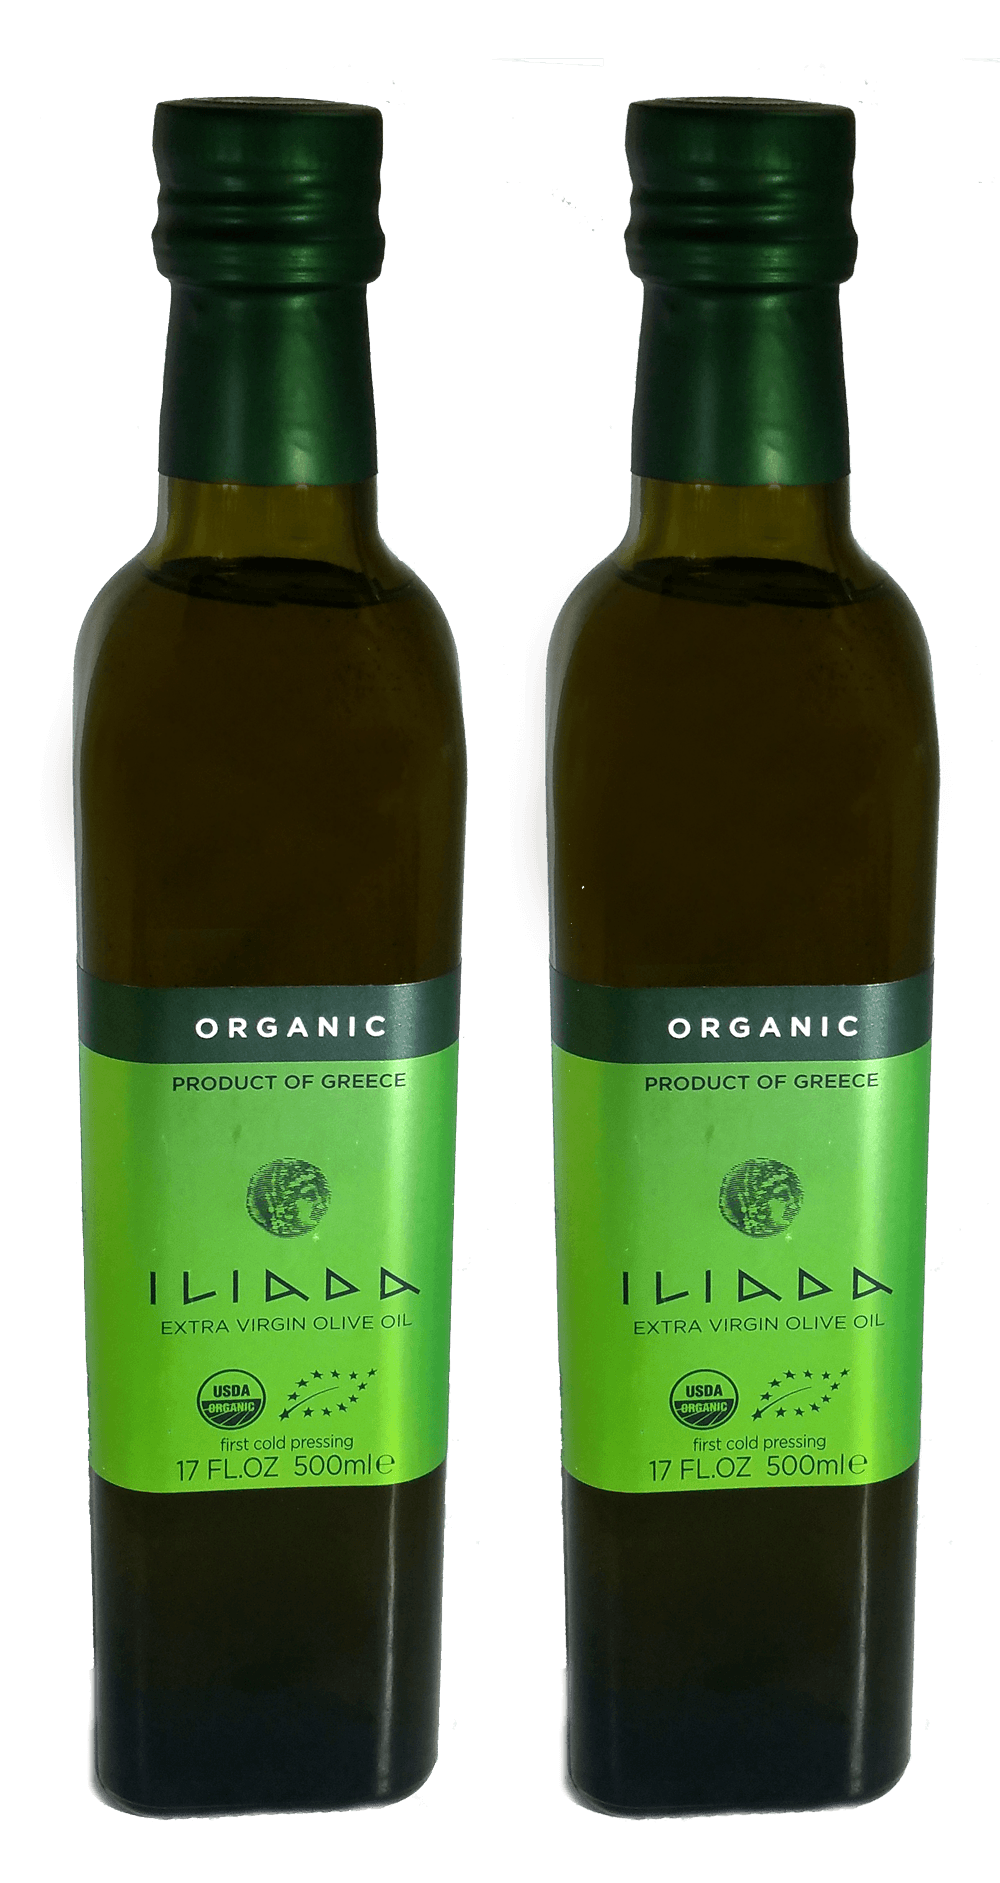 Olive Oil - Iliada Organic Greek Extra Virgin Olive Oil First Cold Press NON GMO - Kosher - 500ML - 2 Pack